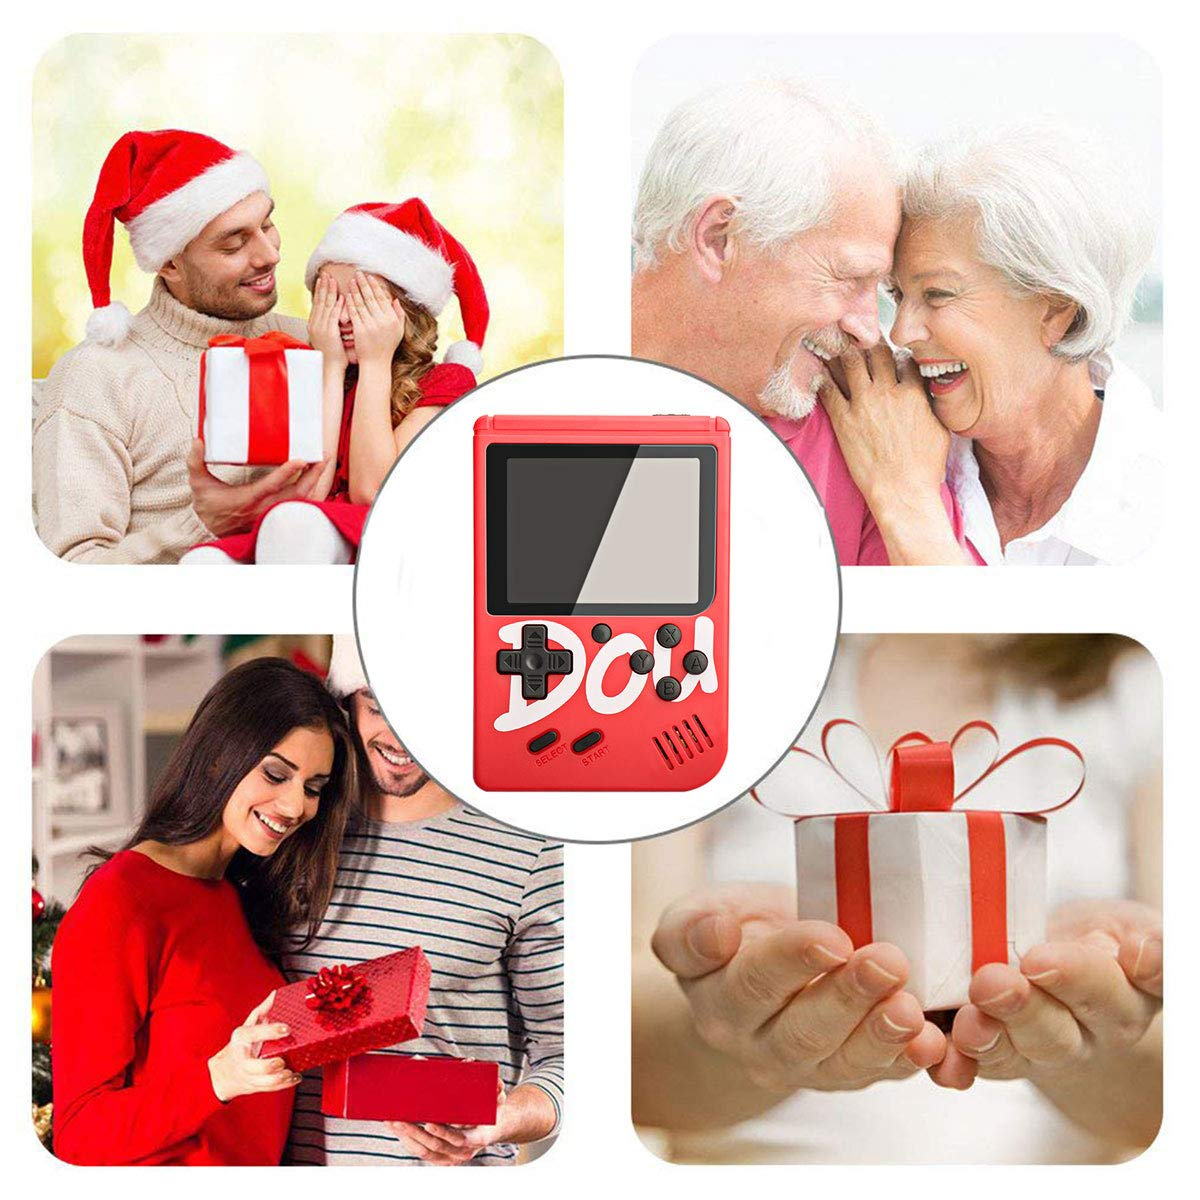 Black MERIT OCEAN Handheld Game Console with Gamepad 360 Classic NES FC Games 3 Inch LCD Screen Portable Retro Video Game Console Support TV Output and Two Players Good Gifts for Kids Adult